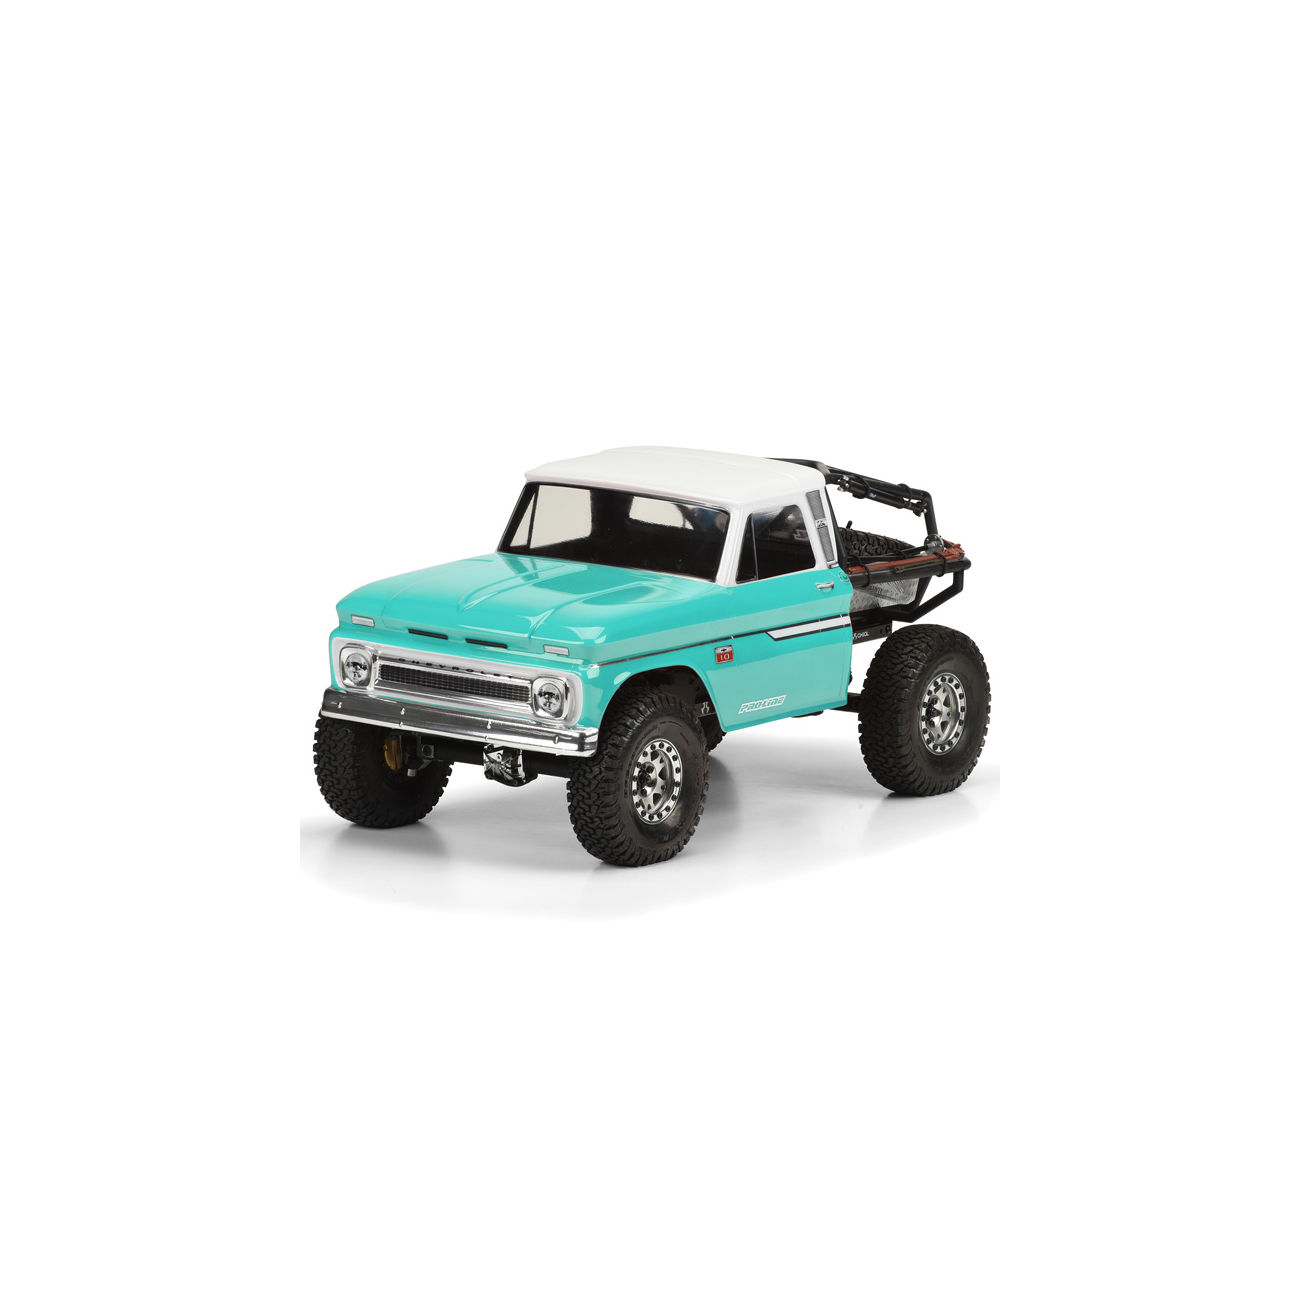 Pro-Line 1:10 Lexan Karosserie Chevrolet C-10 1966 Cab f. Axial Honcho 3483-01 0